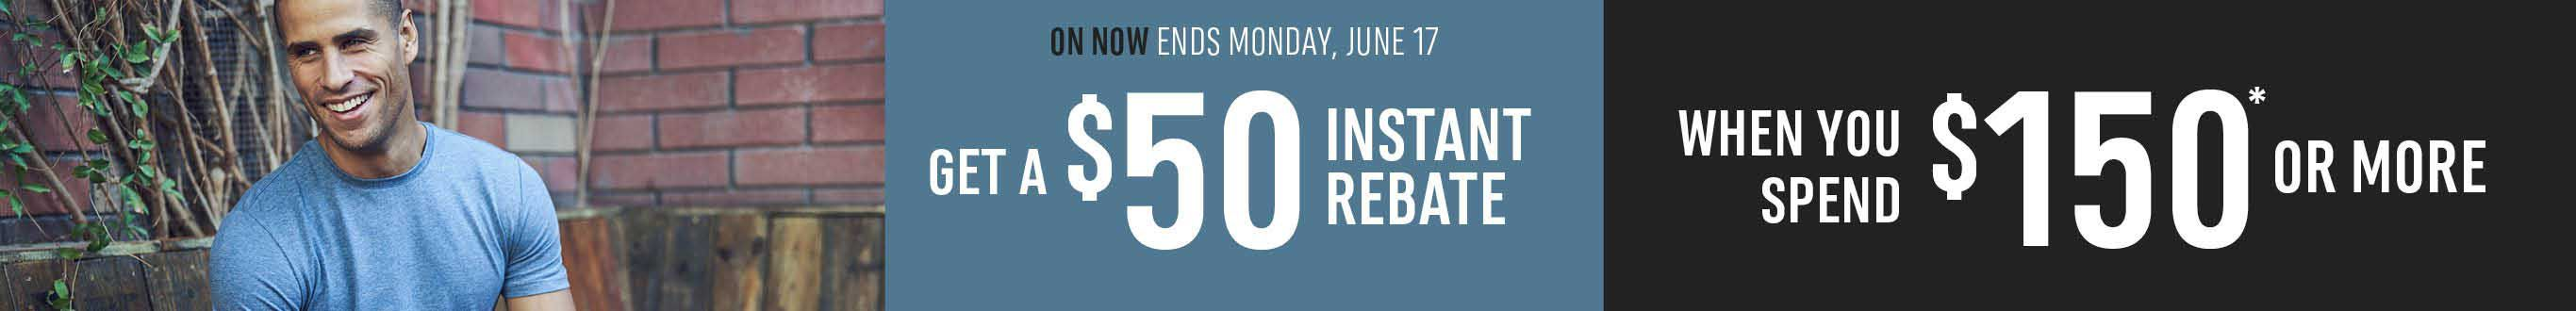 When you spend $150 or more, get a $50 instant rebate.